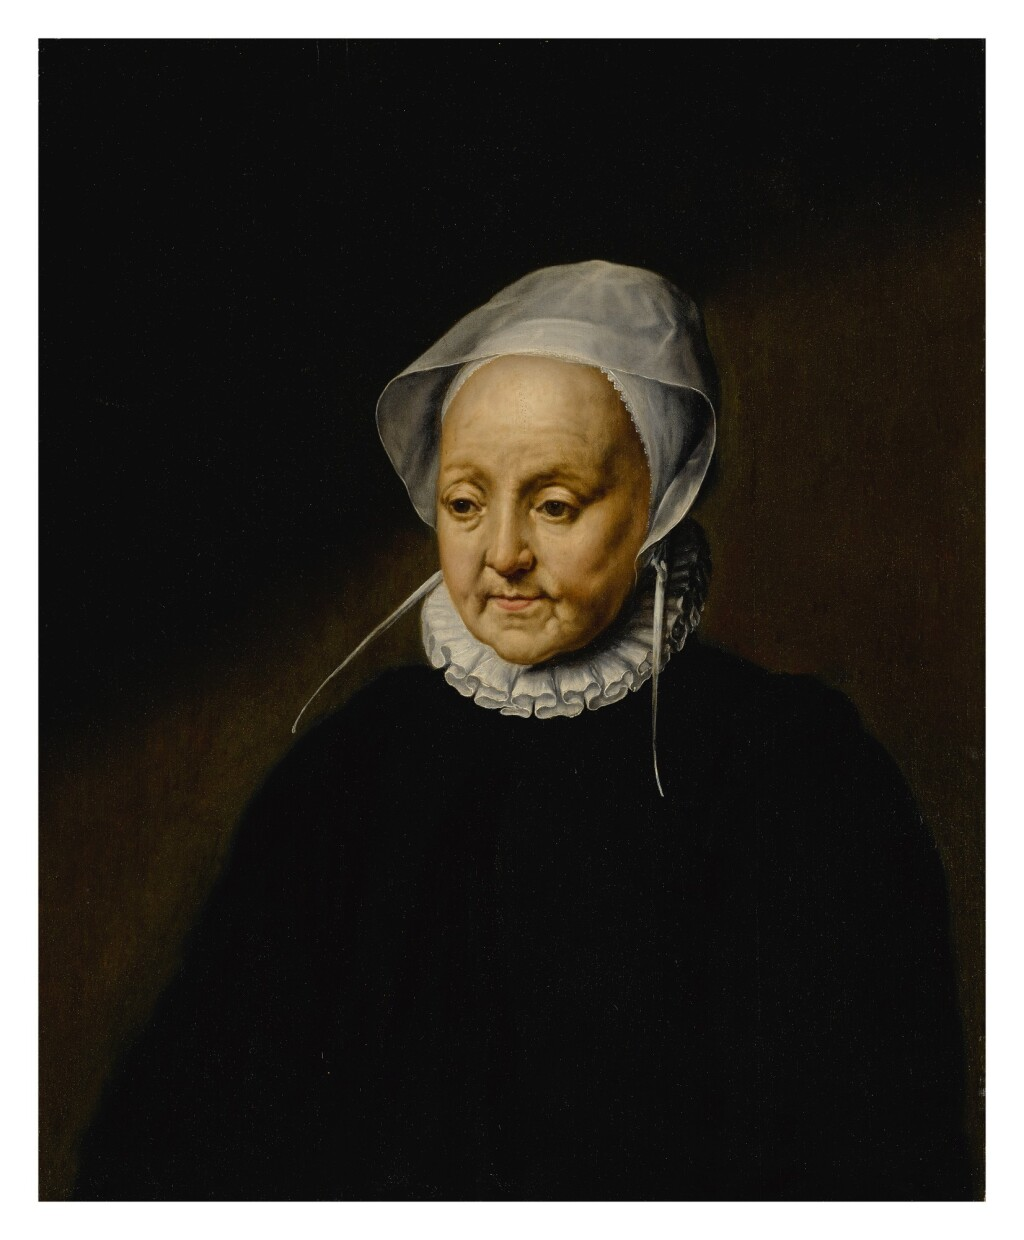 DUTCH SCHOOL, CIRCA 1586   PORTRAIT OF AN OLD WOMAN, AGED 53, HALF-LENGTH, WEARING A BLACK COSTUME WITH A WHITE CAP